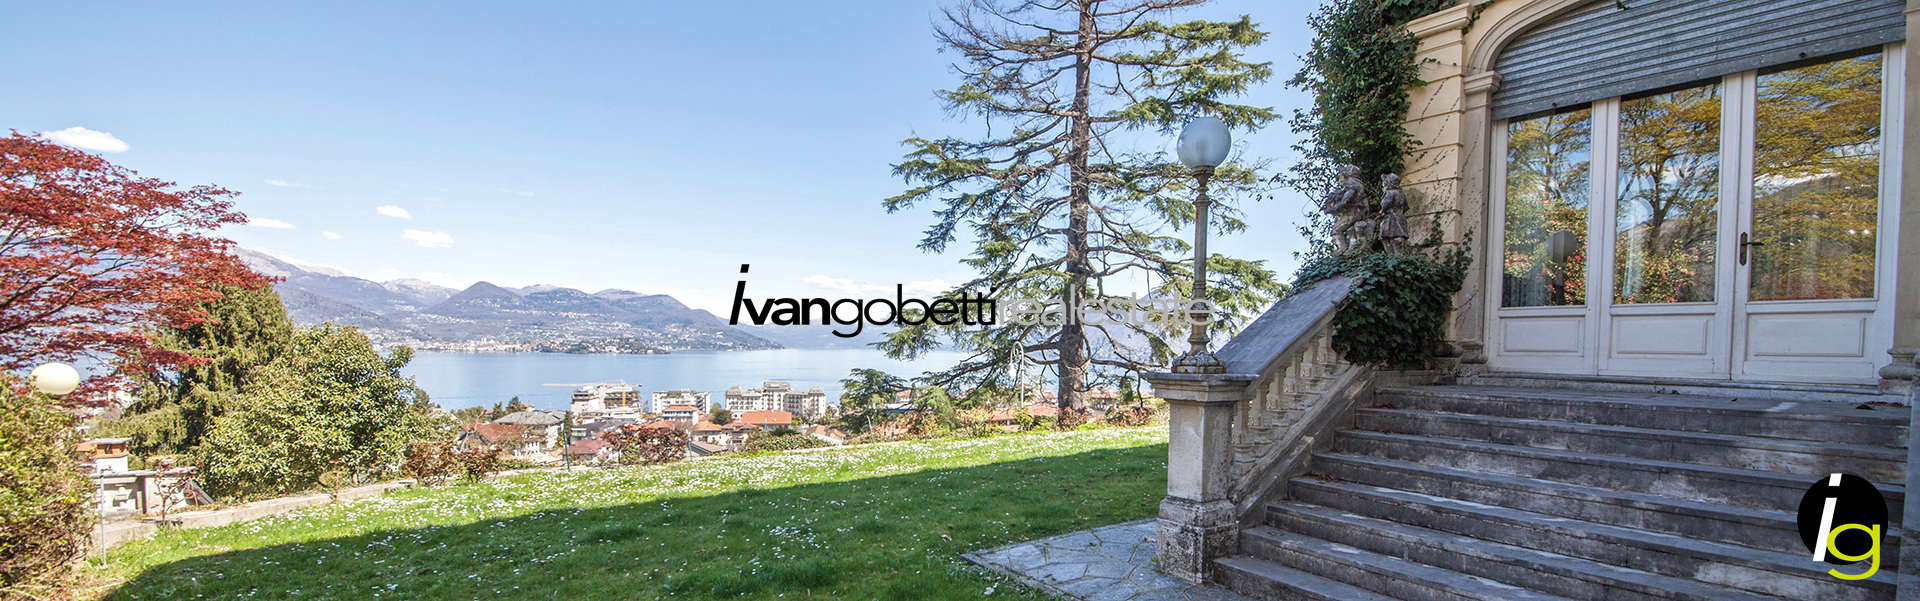 For sale vintage villa with park in Stresa Lake Maggiore